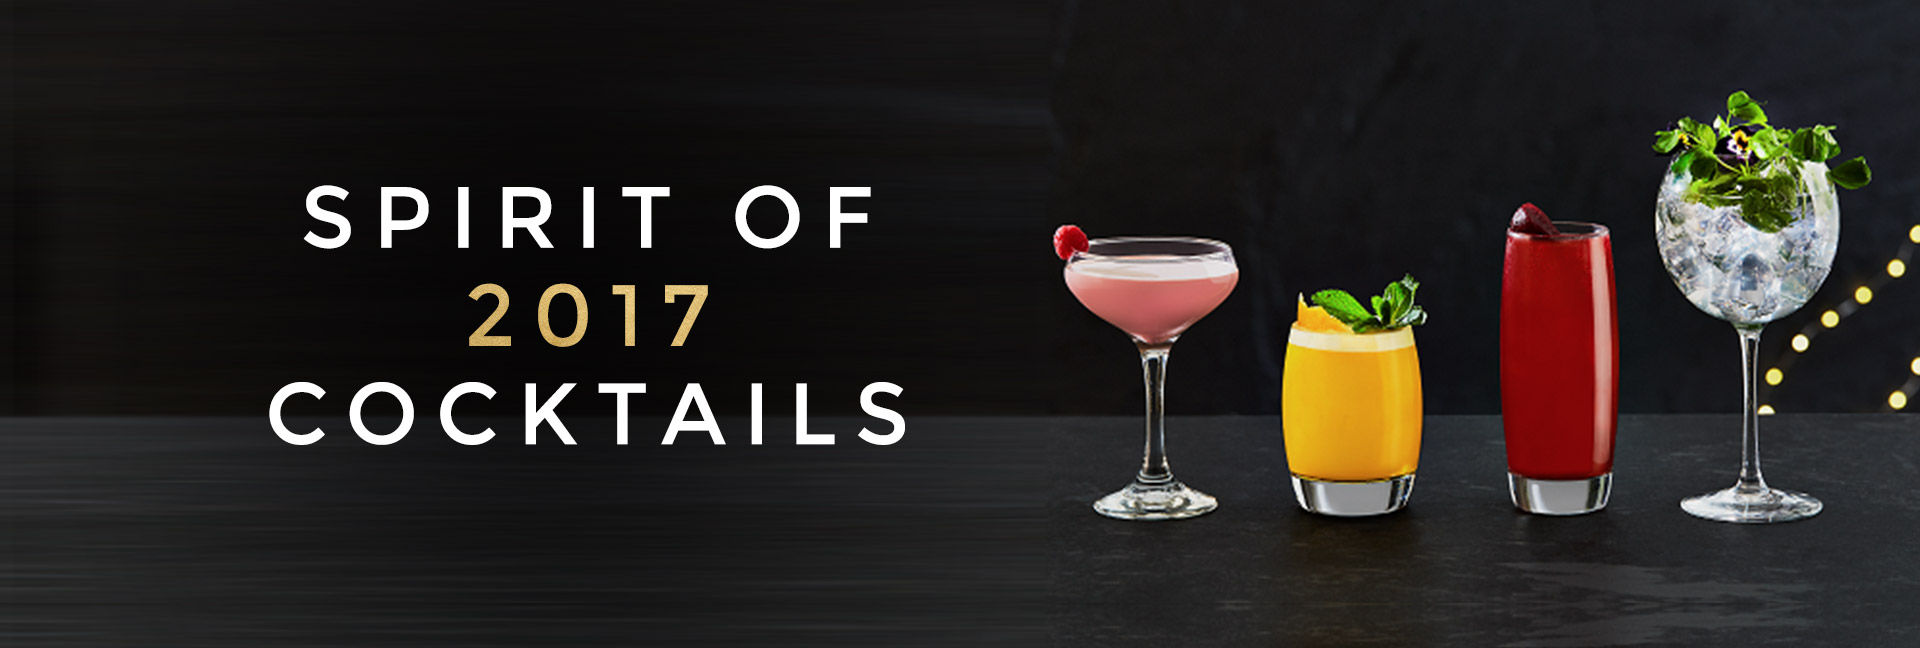 Spirit of 2017 cocktails at All Bar One Cannon Street